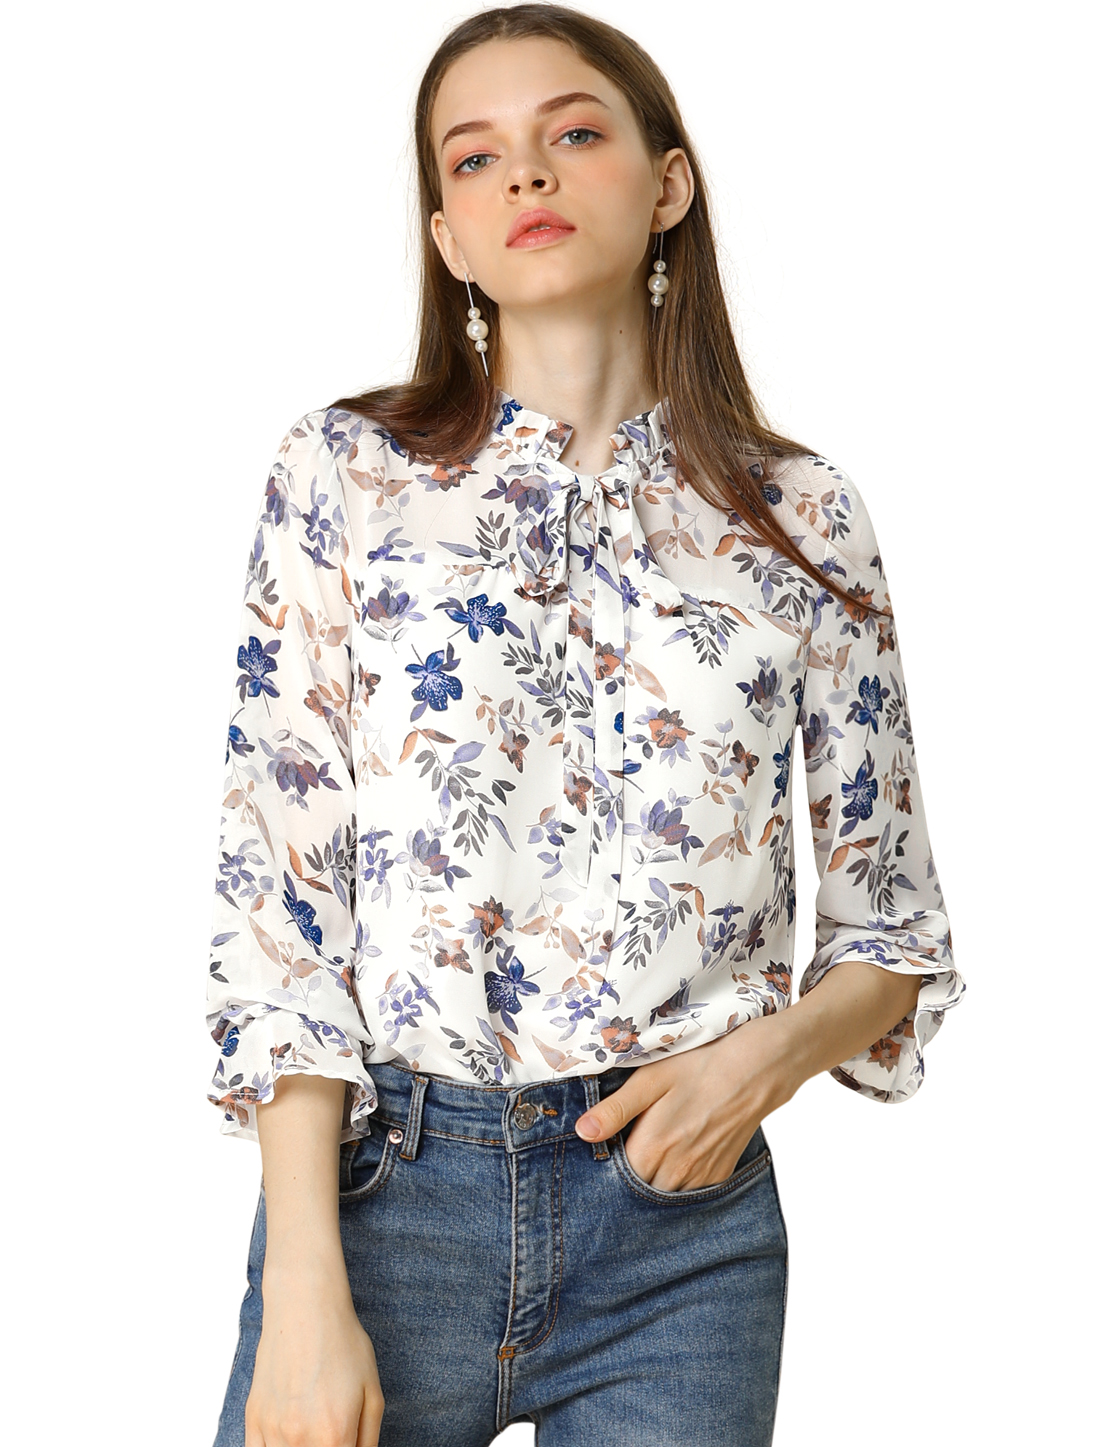 Allegra K Women's Long Sleeve Tie Neck Ruffle Collar Floral Print Top White S